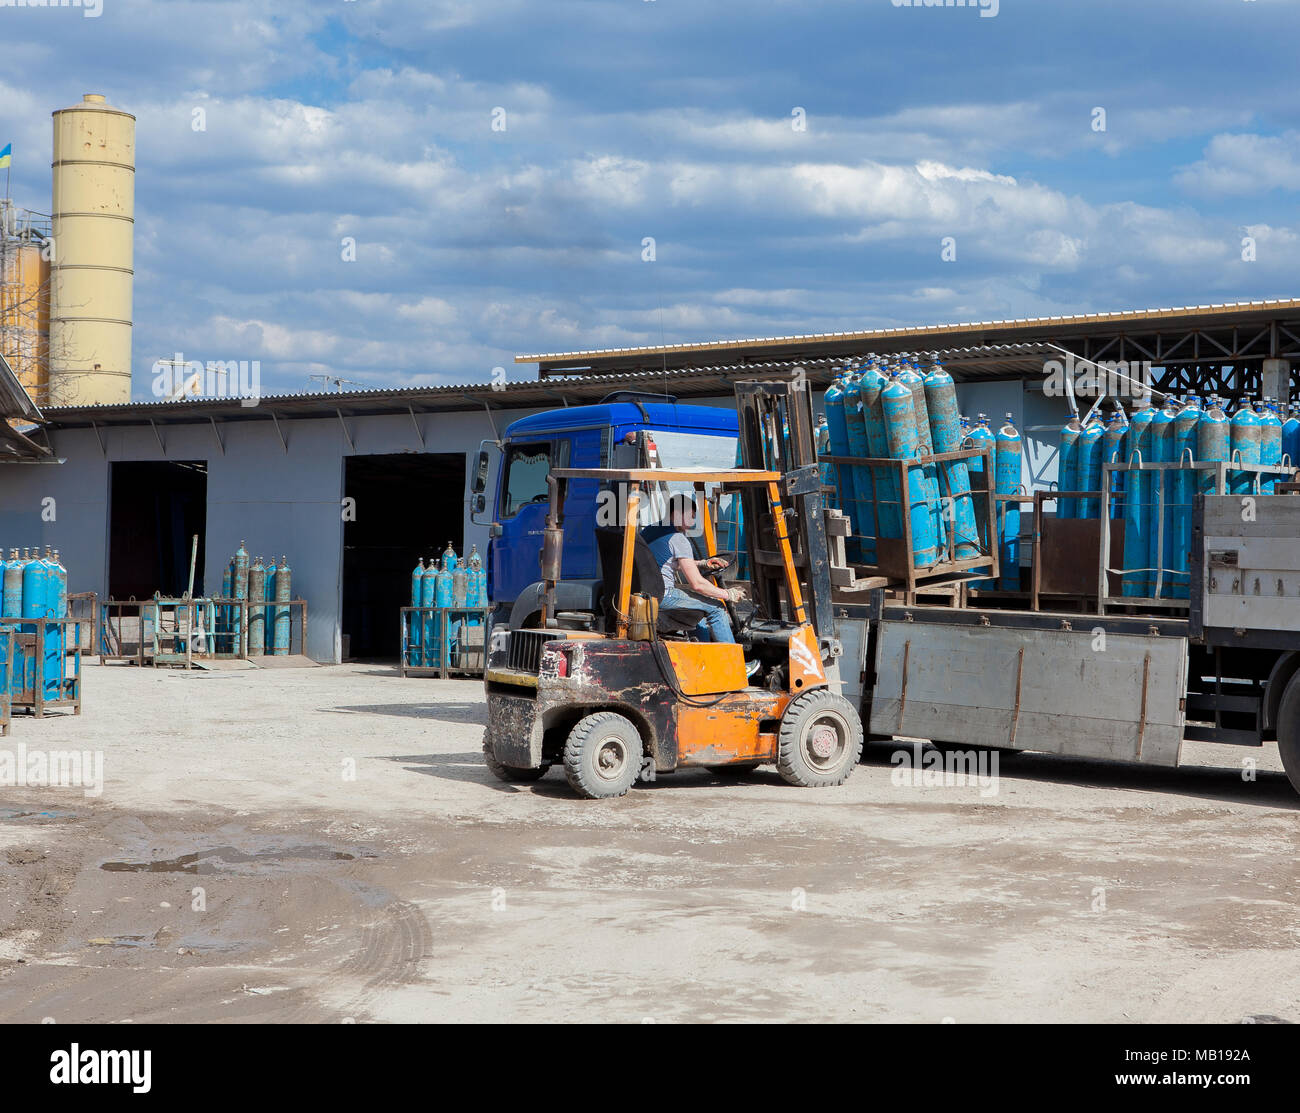 Truck for transportation of gas cylinders. The car delivers gas to shops, restaurants and city dwellers. ForkLift unloading of a truck with gas cylinders - Stock Image